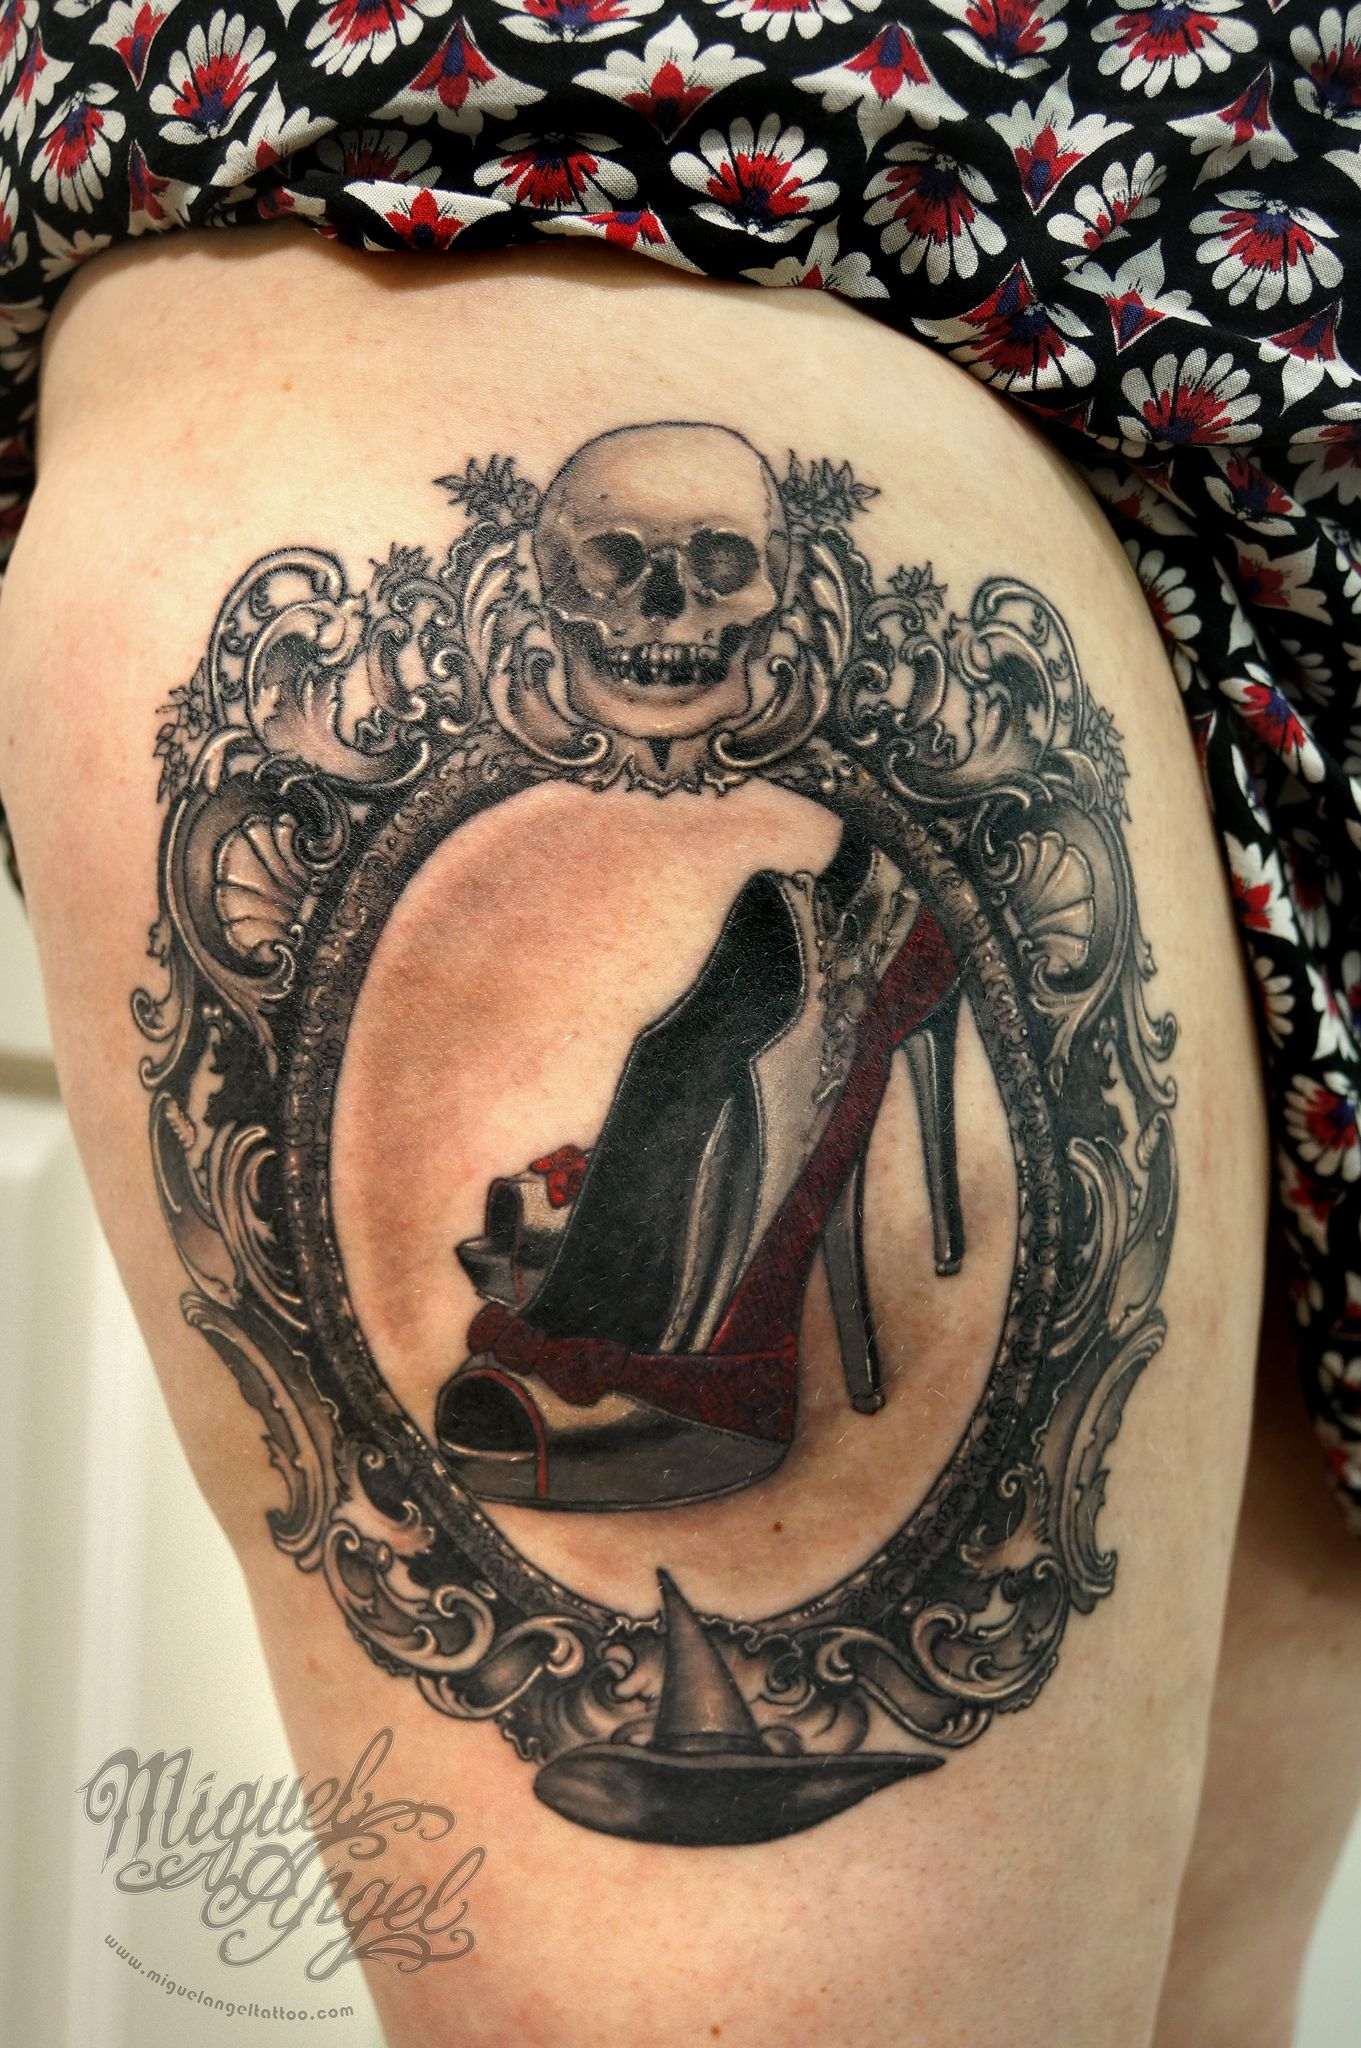 Wizard of Oz, Victorian frame, skull and stiletto shoes Custom tattoo